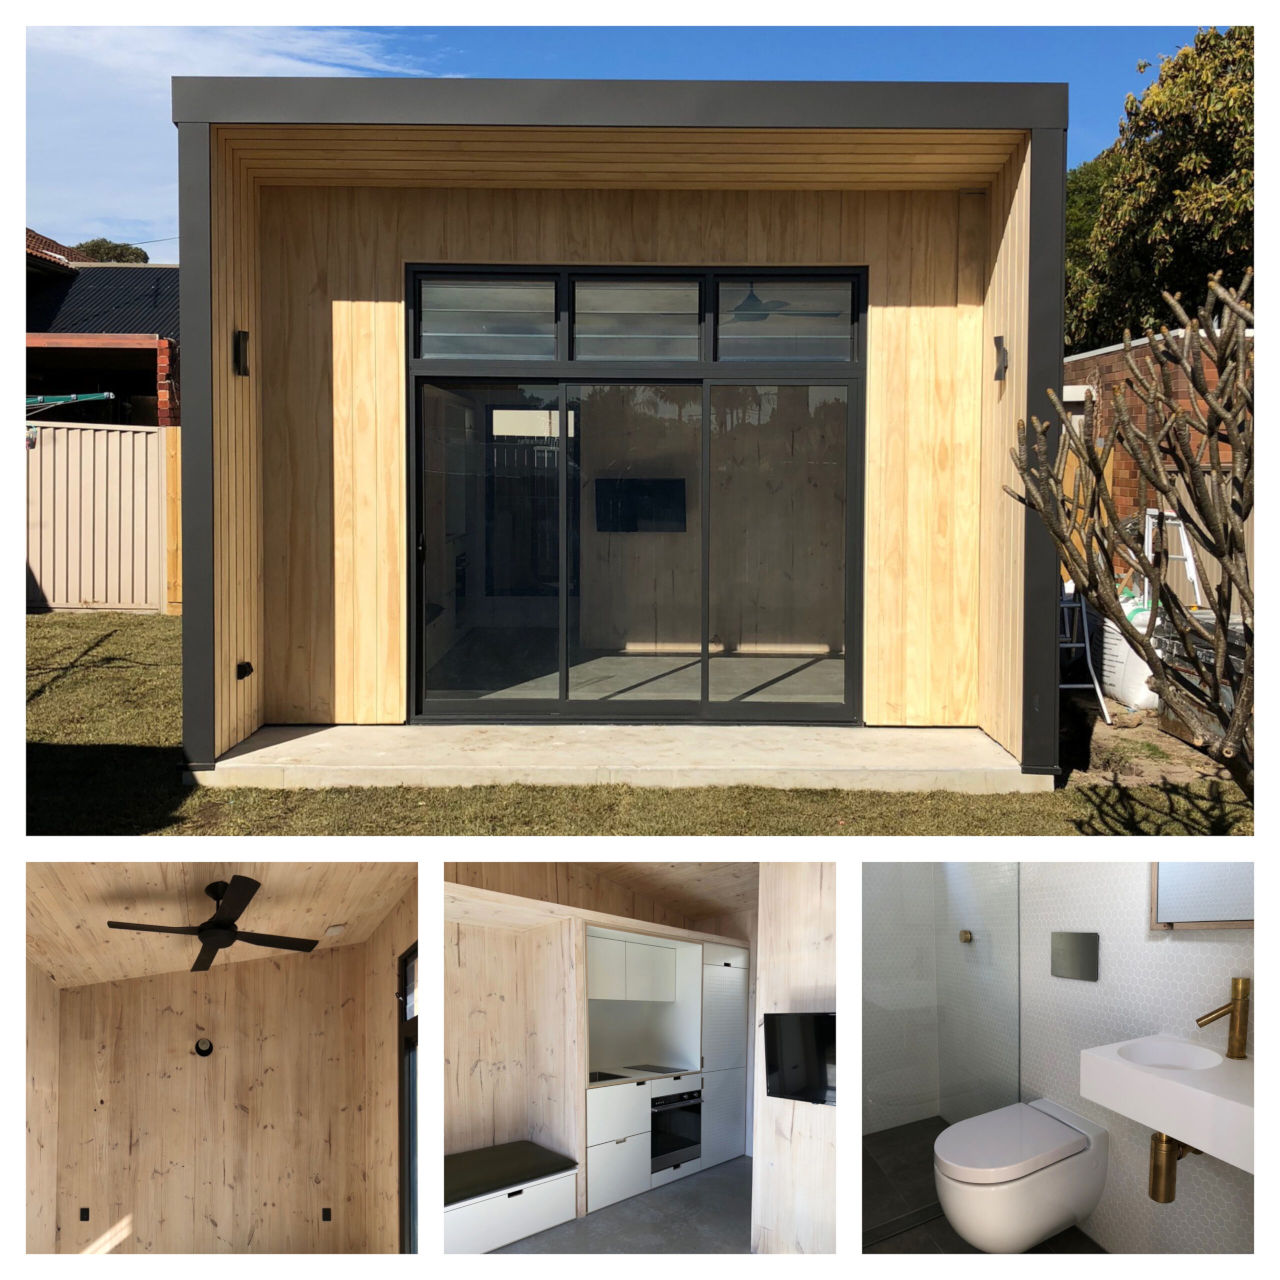 Collated images of Yardstix CLT tiny house: Top image is front view, with images of bedroom, living area and kitchen, and bathroom underneath.